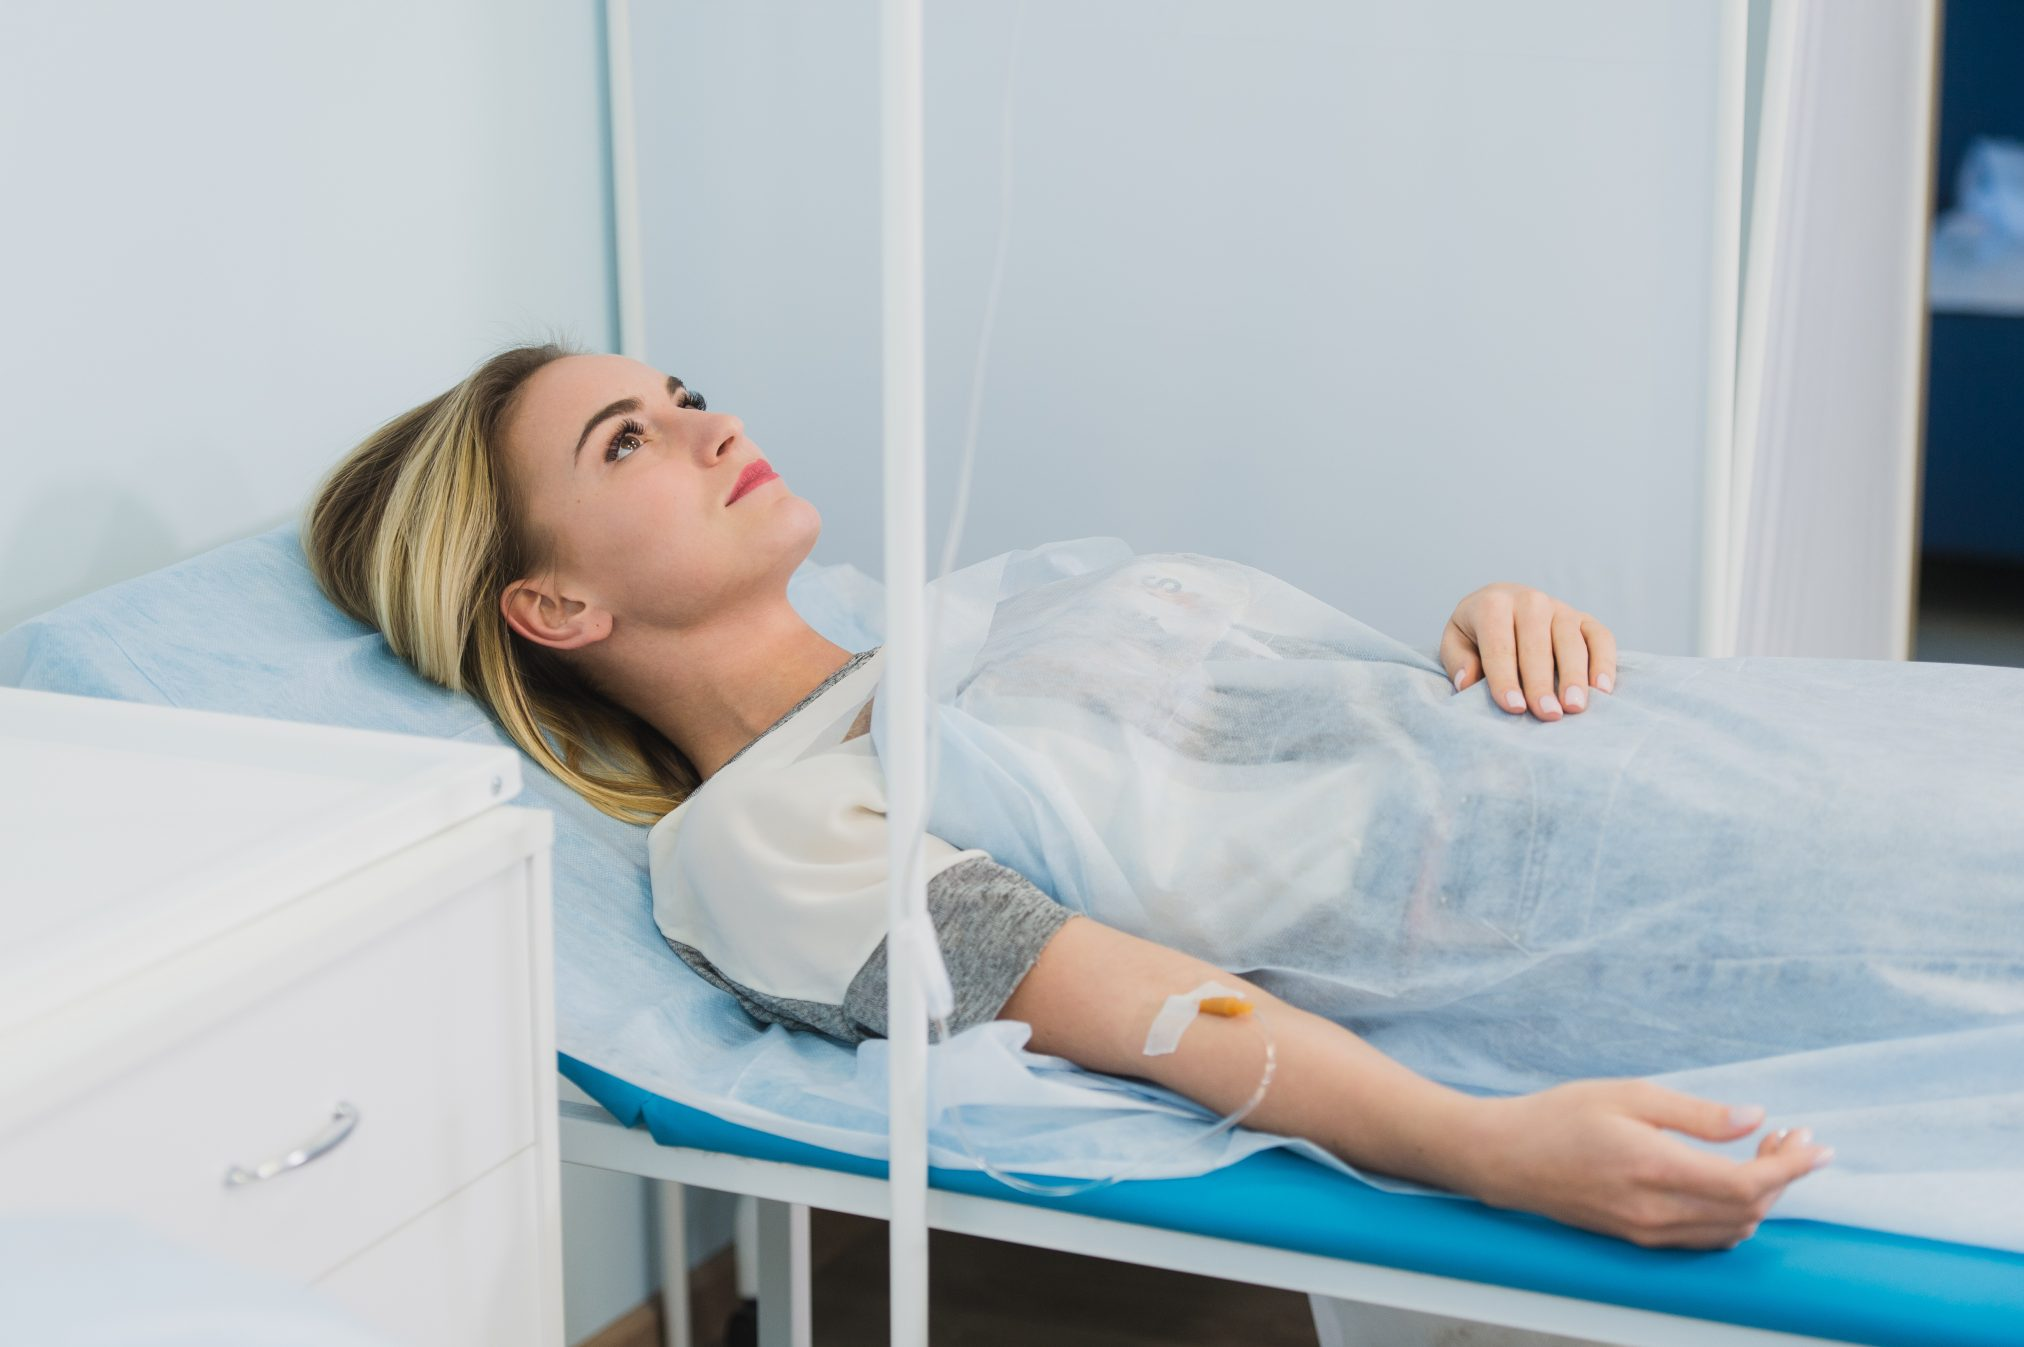 woman on IV drip patient